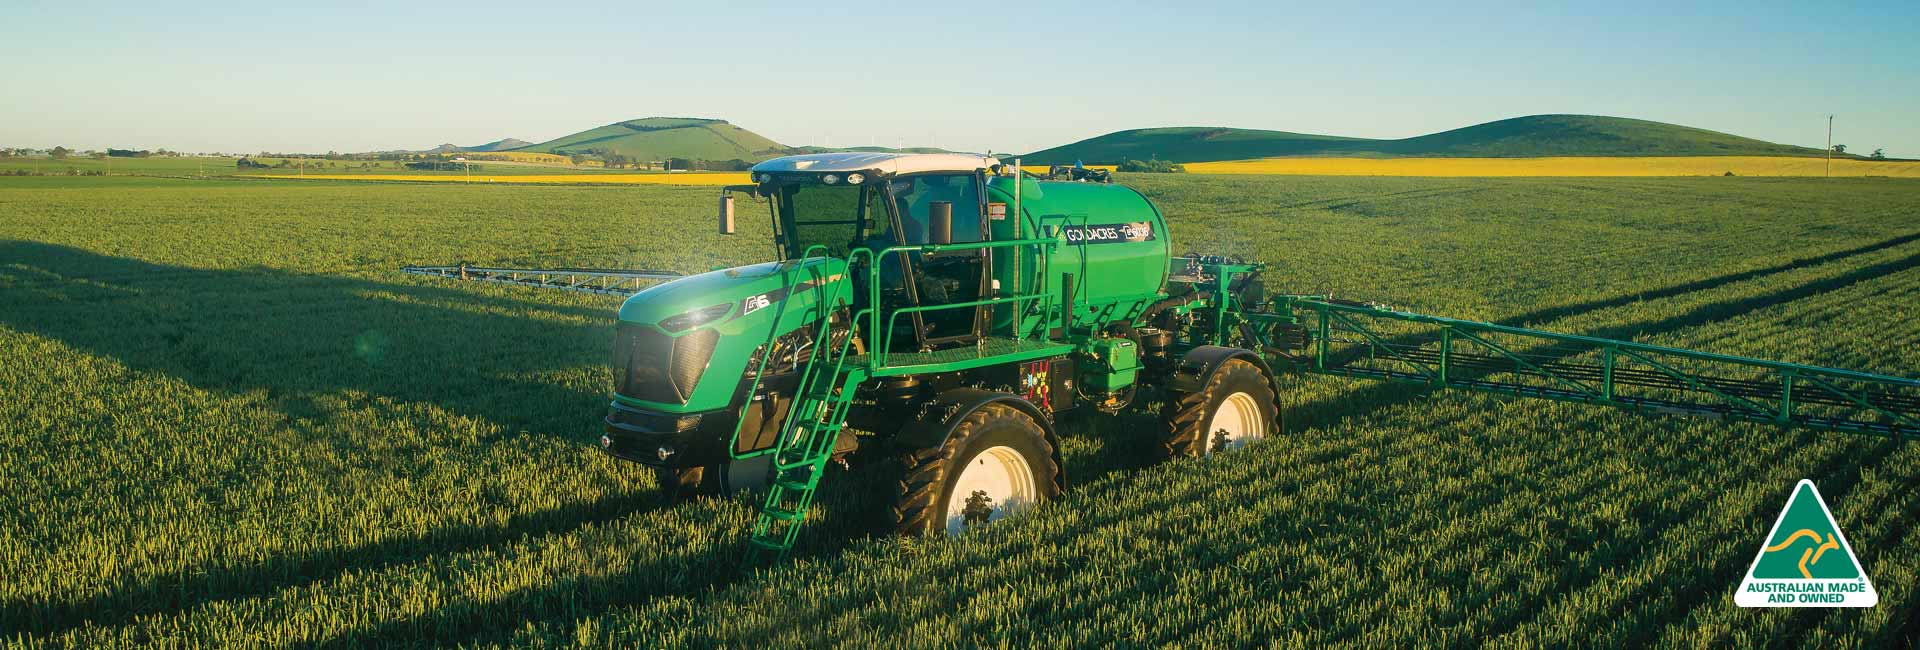 Agricultural Chemical Spray Equipment